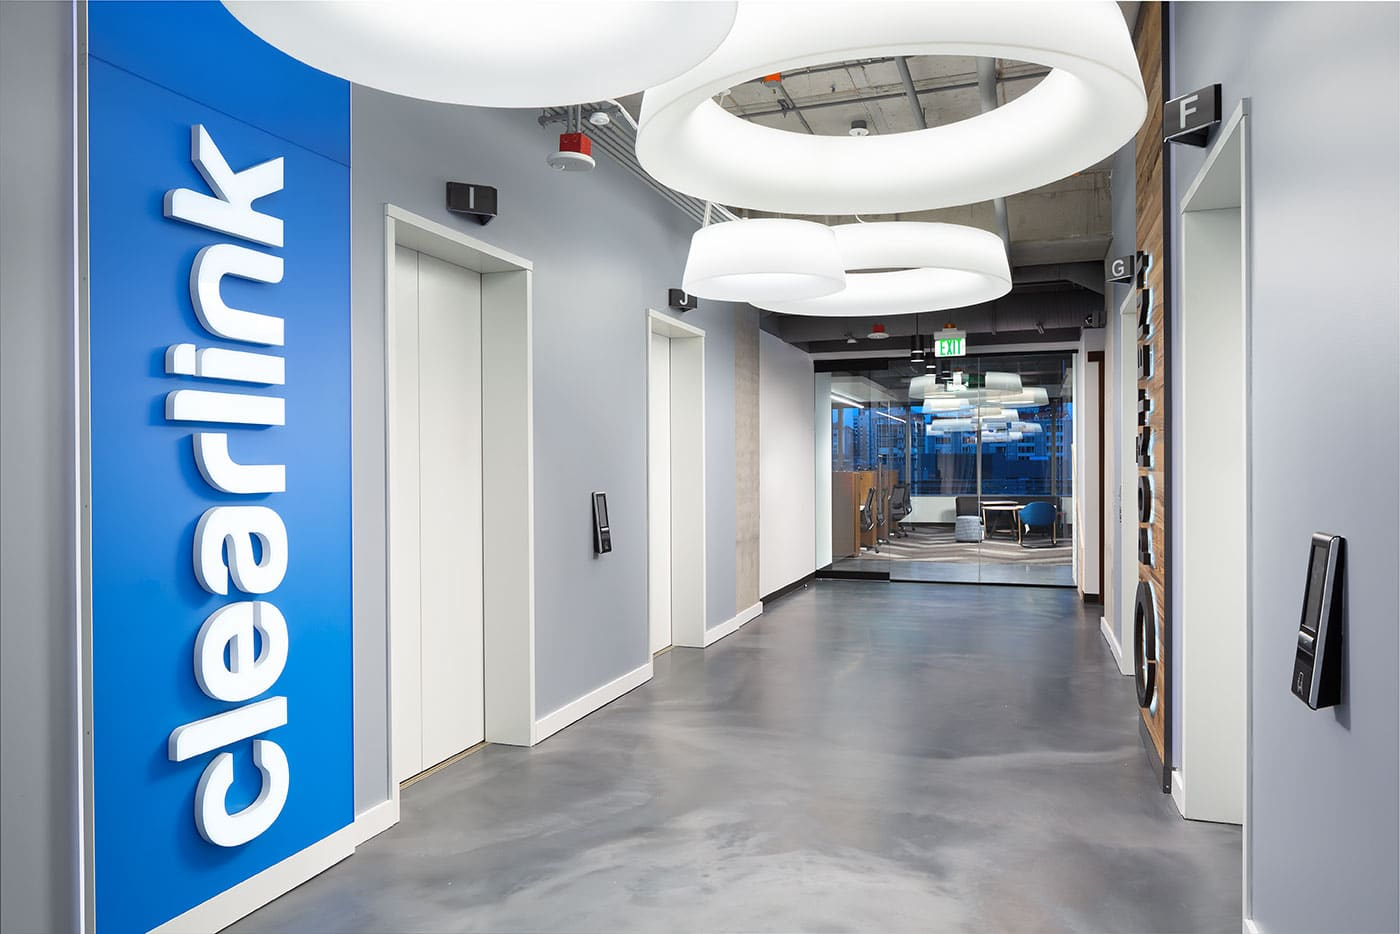 Clearlink's elevator lobby